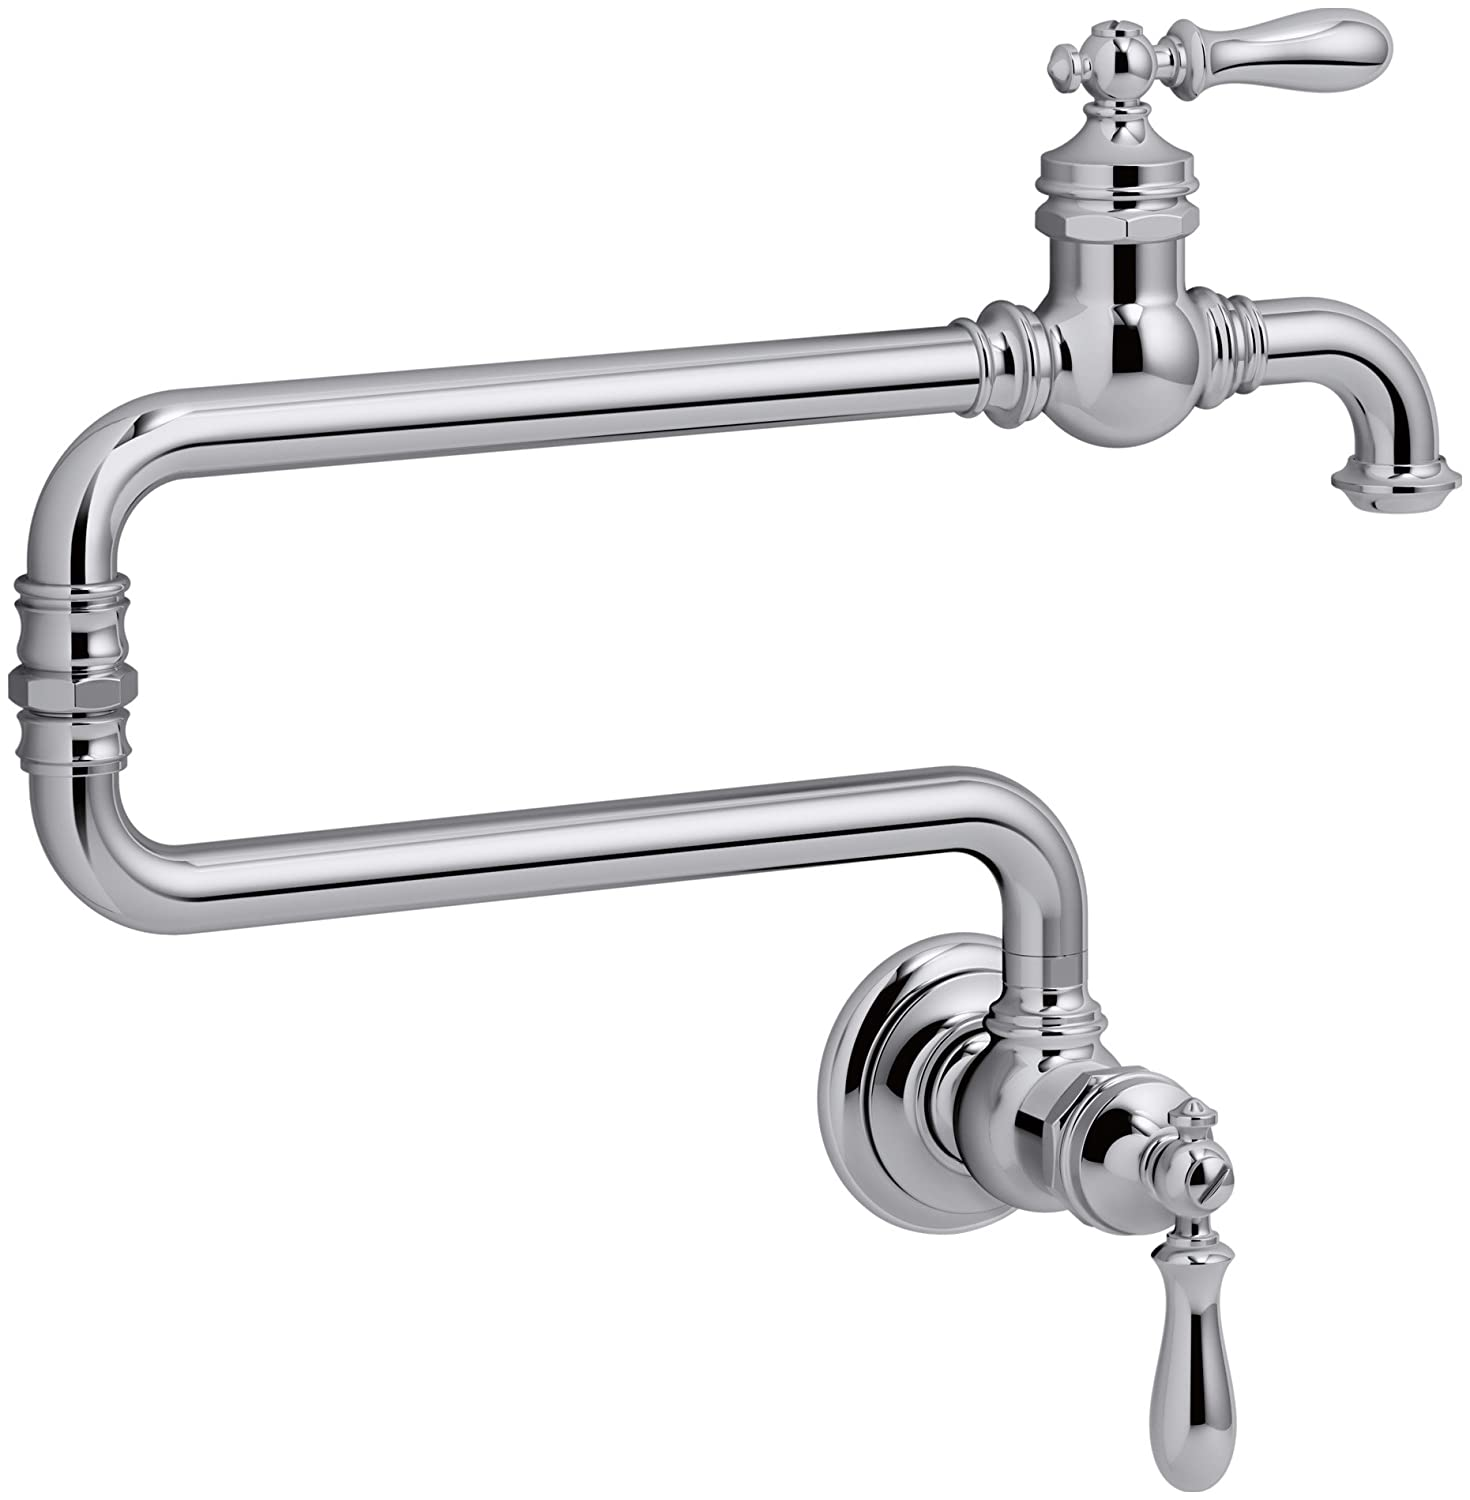 KOHLER 99270-CP Artifacts Single-Hole Wall-Mount Pot Filler Kitchen Sink Faucet with 22-Inch Extended Spout, Polished Chrome